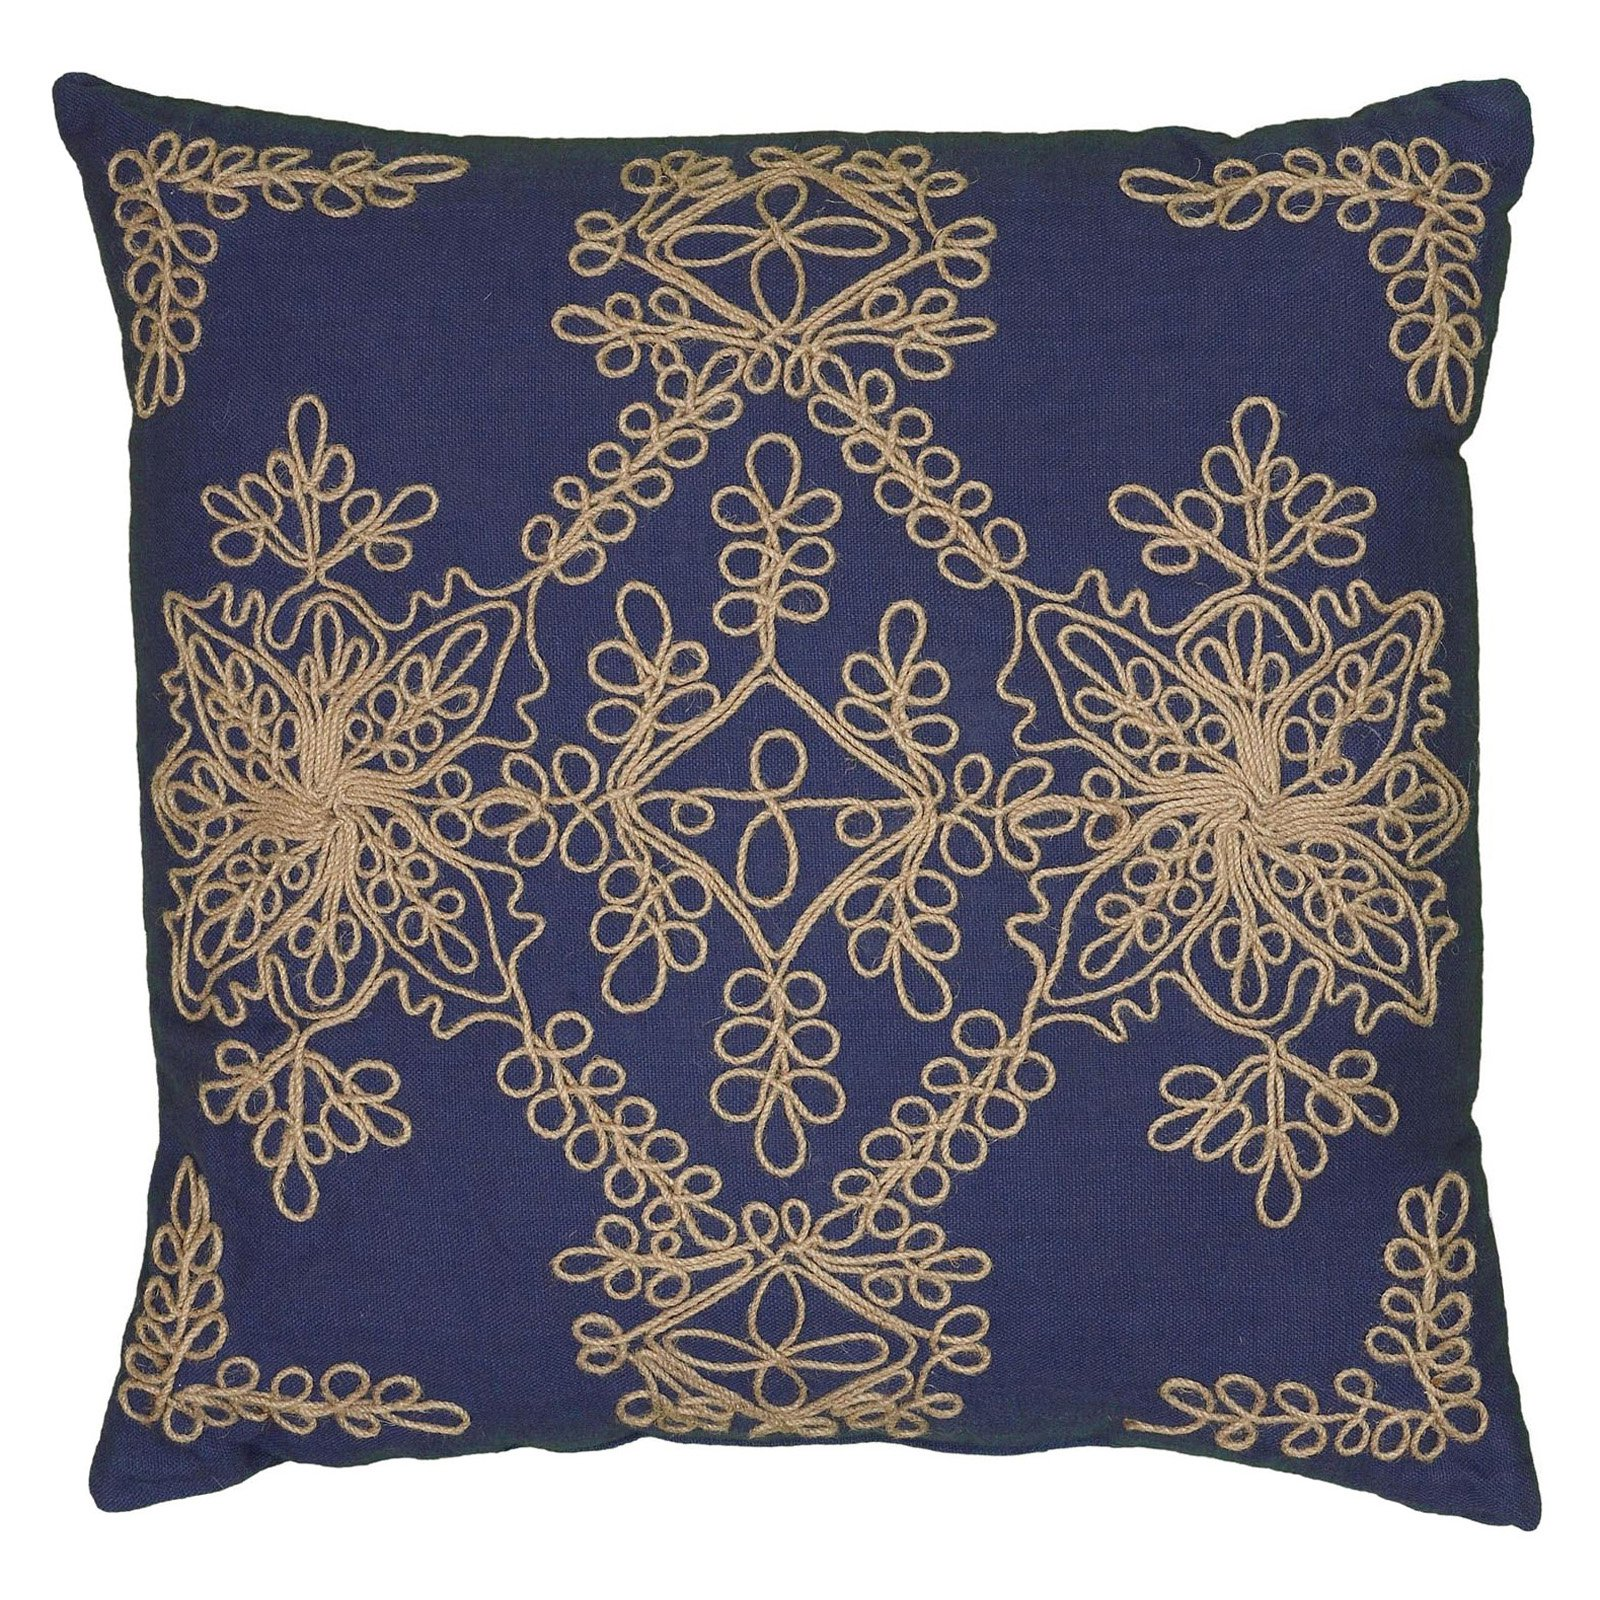 """Rizzy Home Medallion Poly Filled Decorative Throw Pillow, 18"""" x 18"""", Rust"""